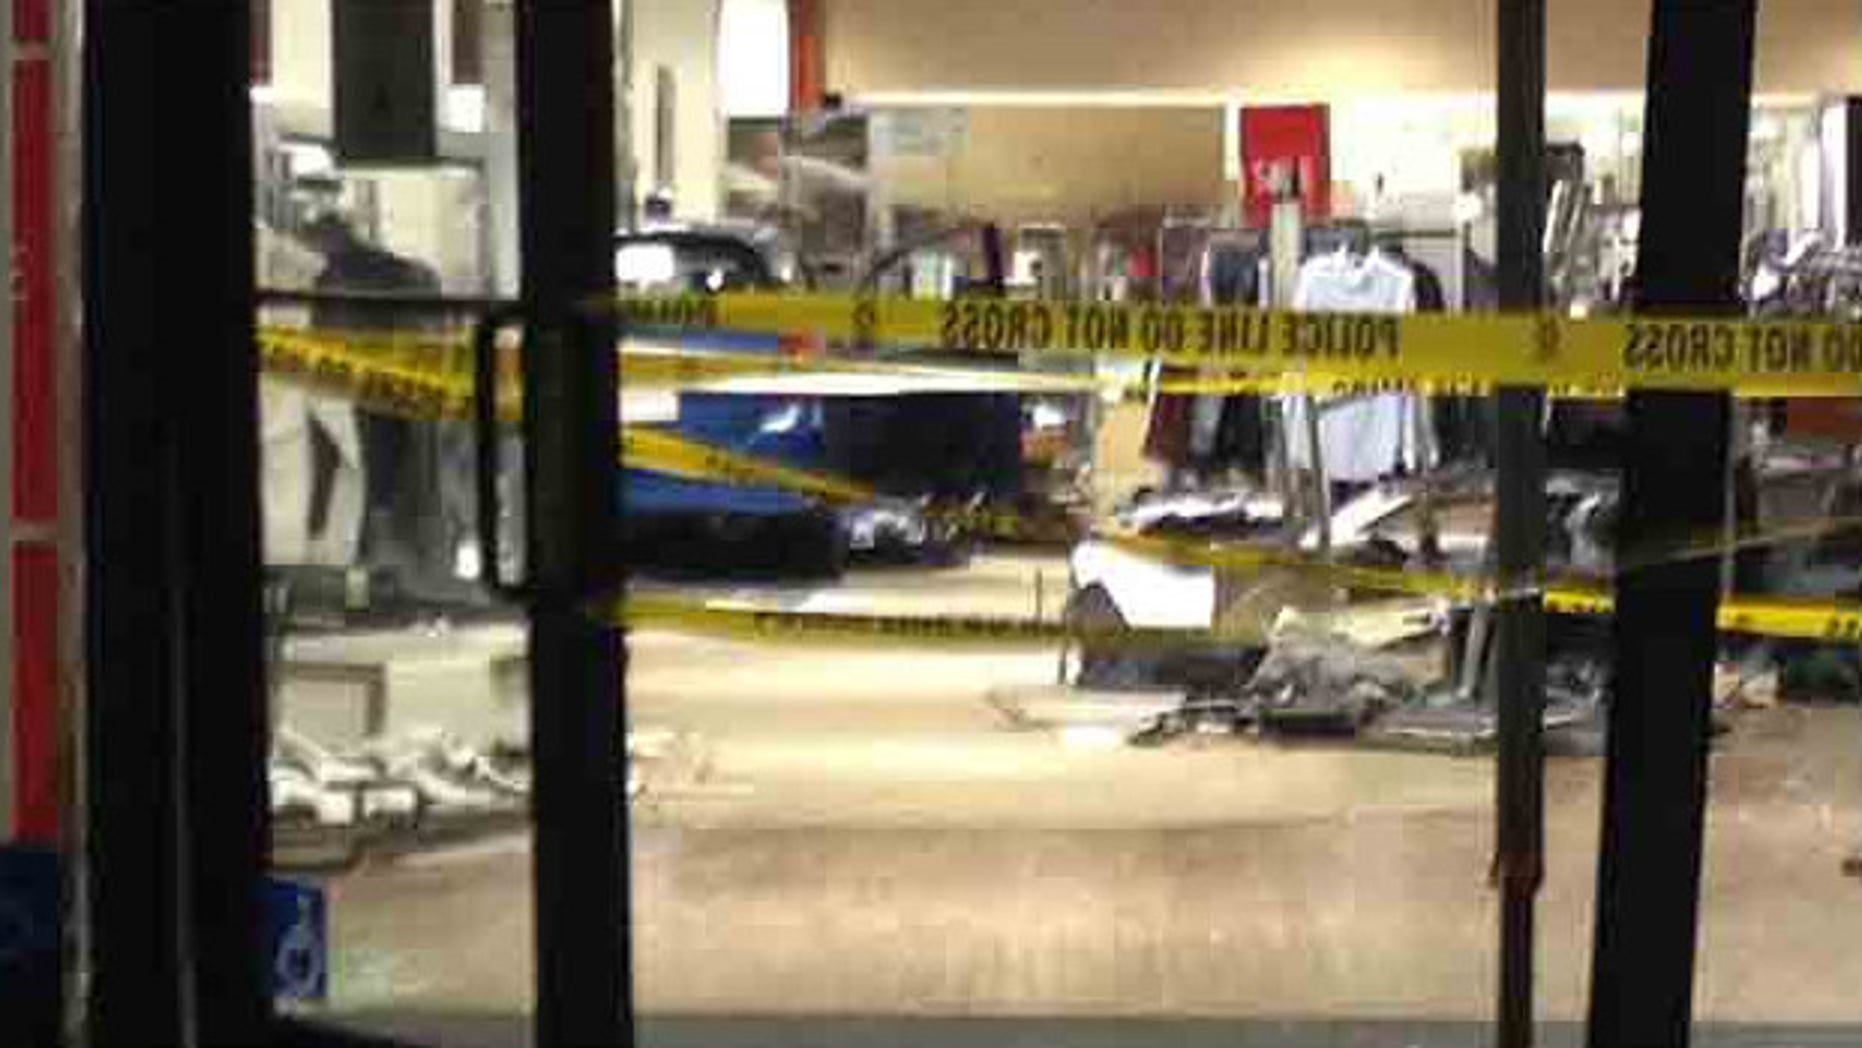 Jan. 14, 2015: Scene at NewPark Mall where a driver plowed through a Macy's store.